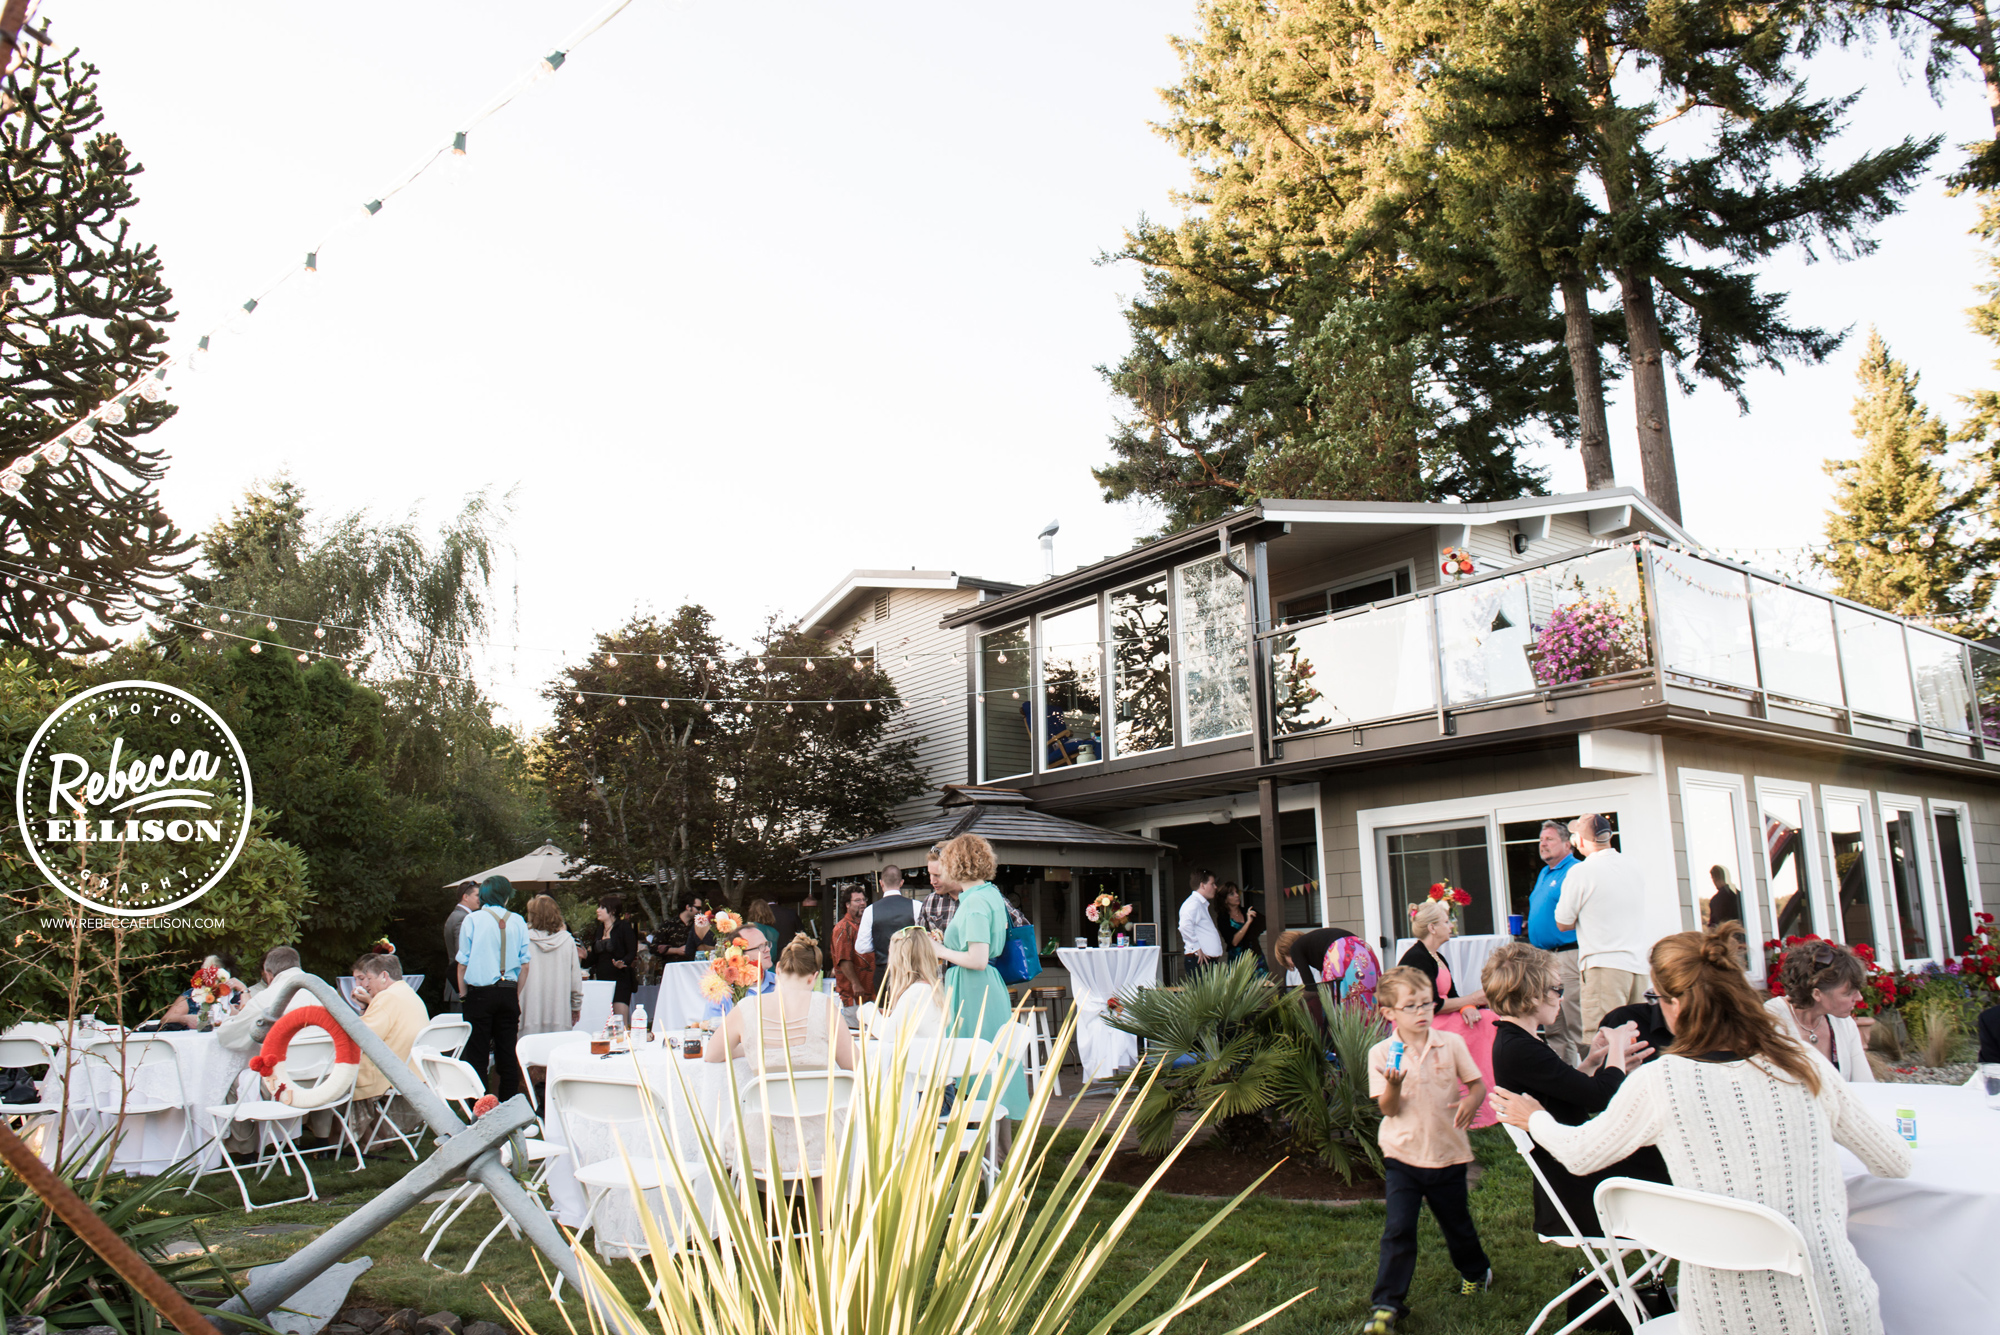 Wedding reception at a backyard beach house wedding near seattle photographed by Rebecca Ellison Photography